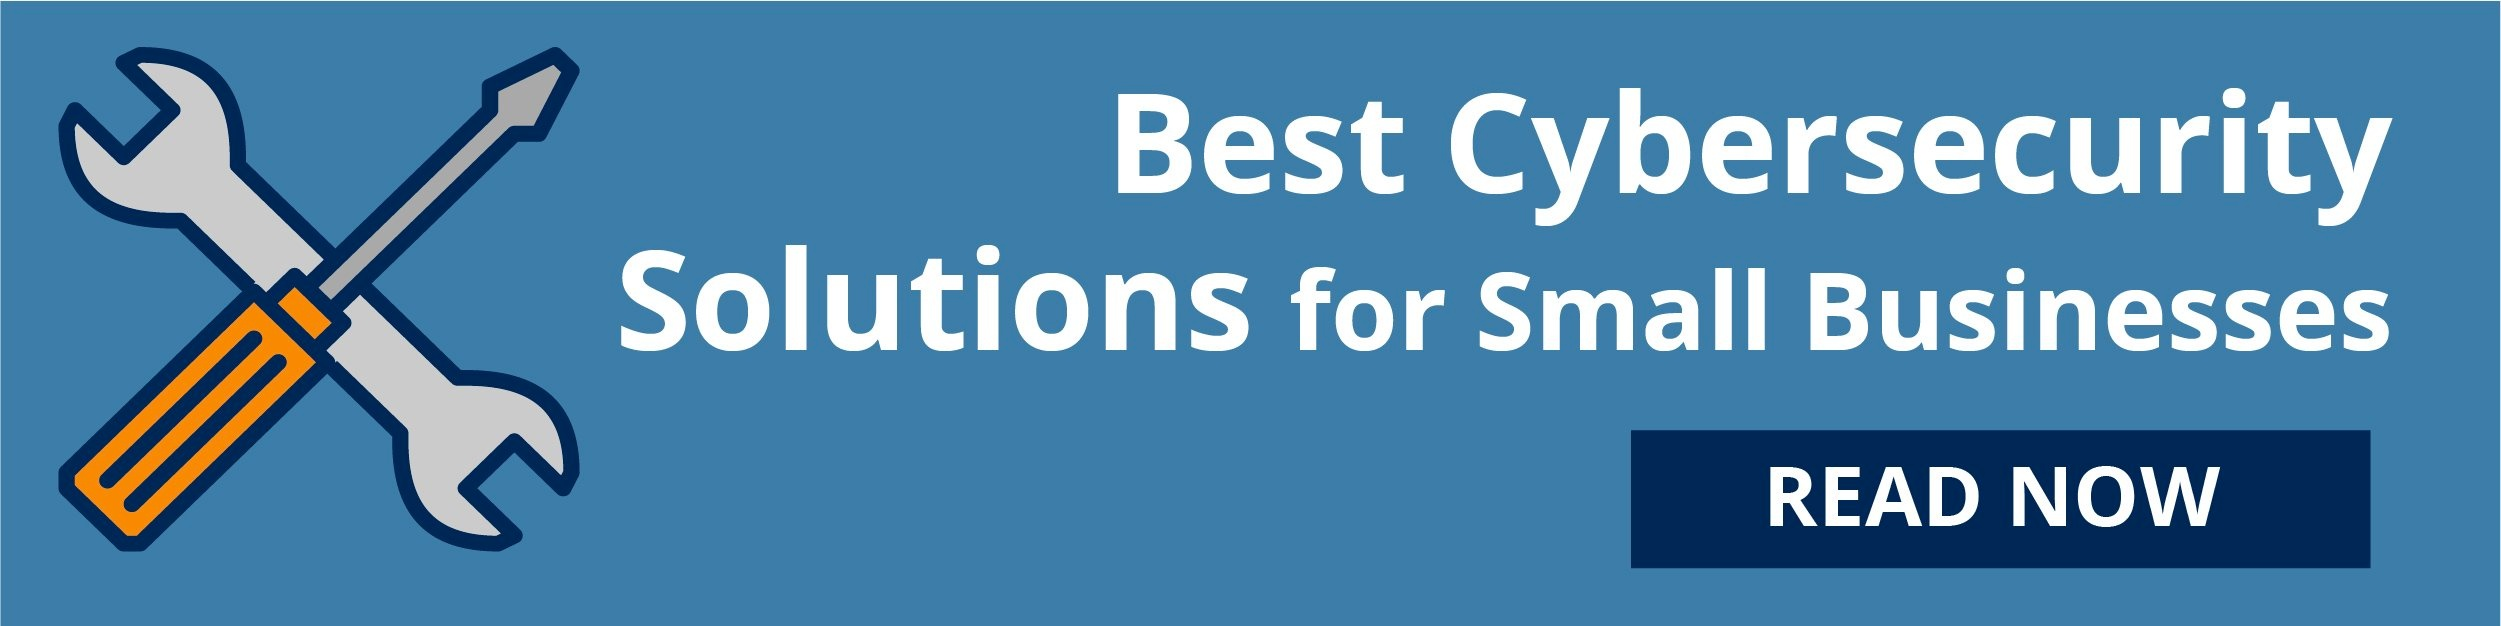 Blog - Best Cybersecurity Solutions for Small Businesses